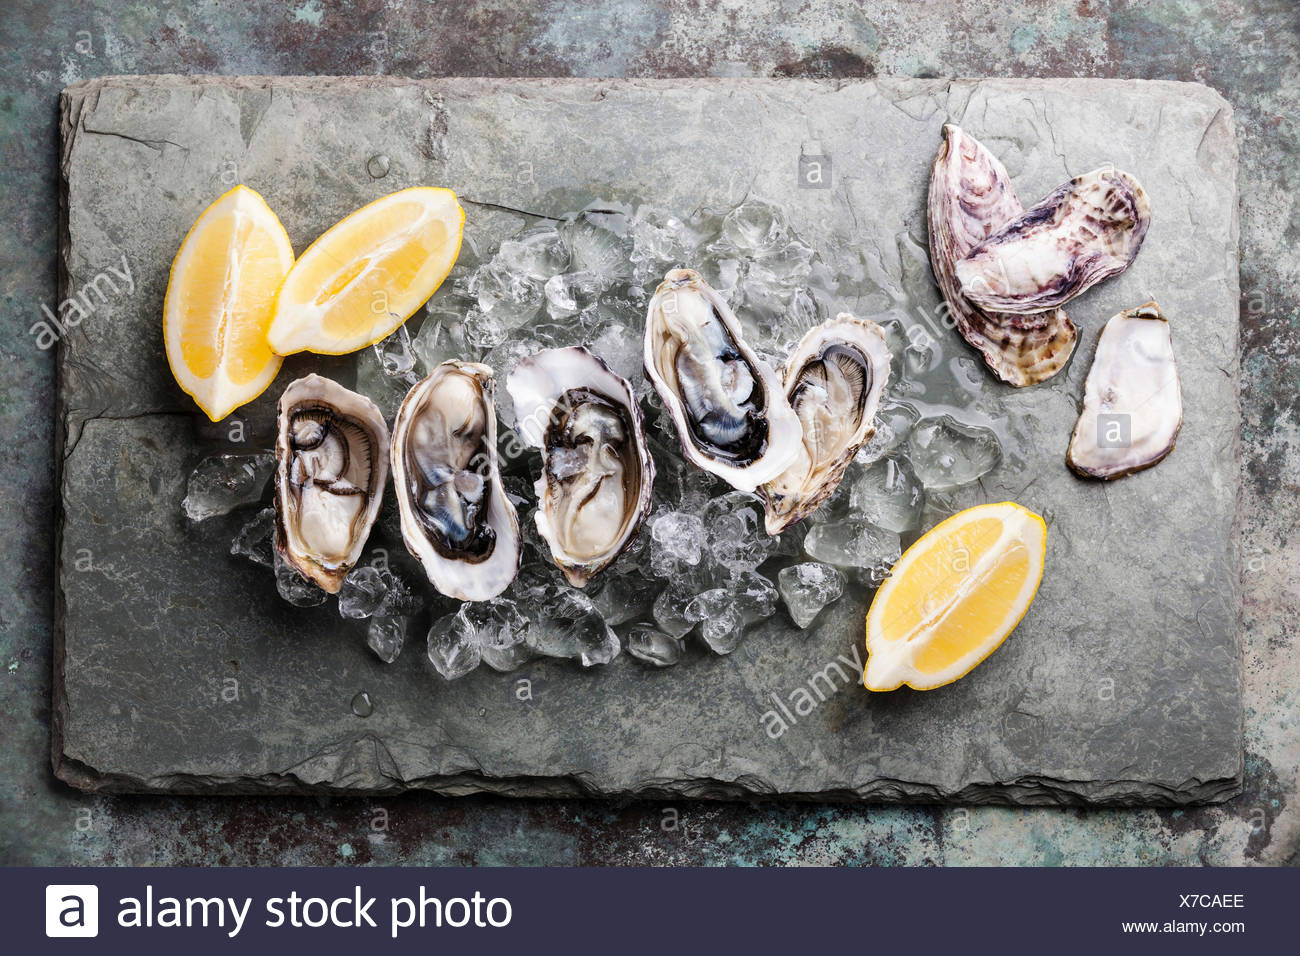 Opened Oysters on stone plate with ice and lemon - Stock Image